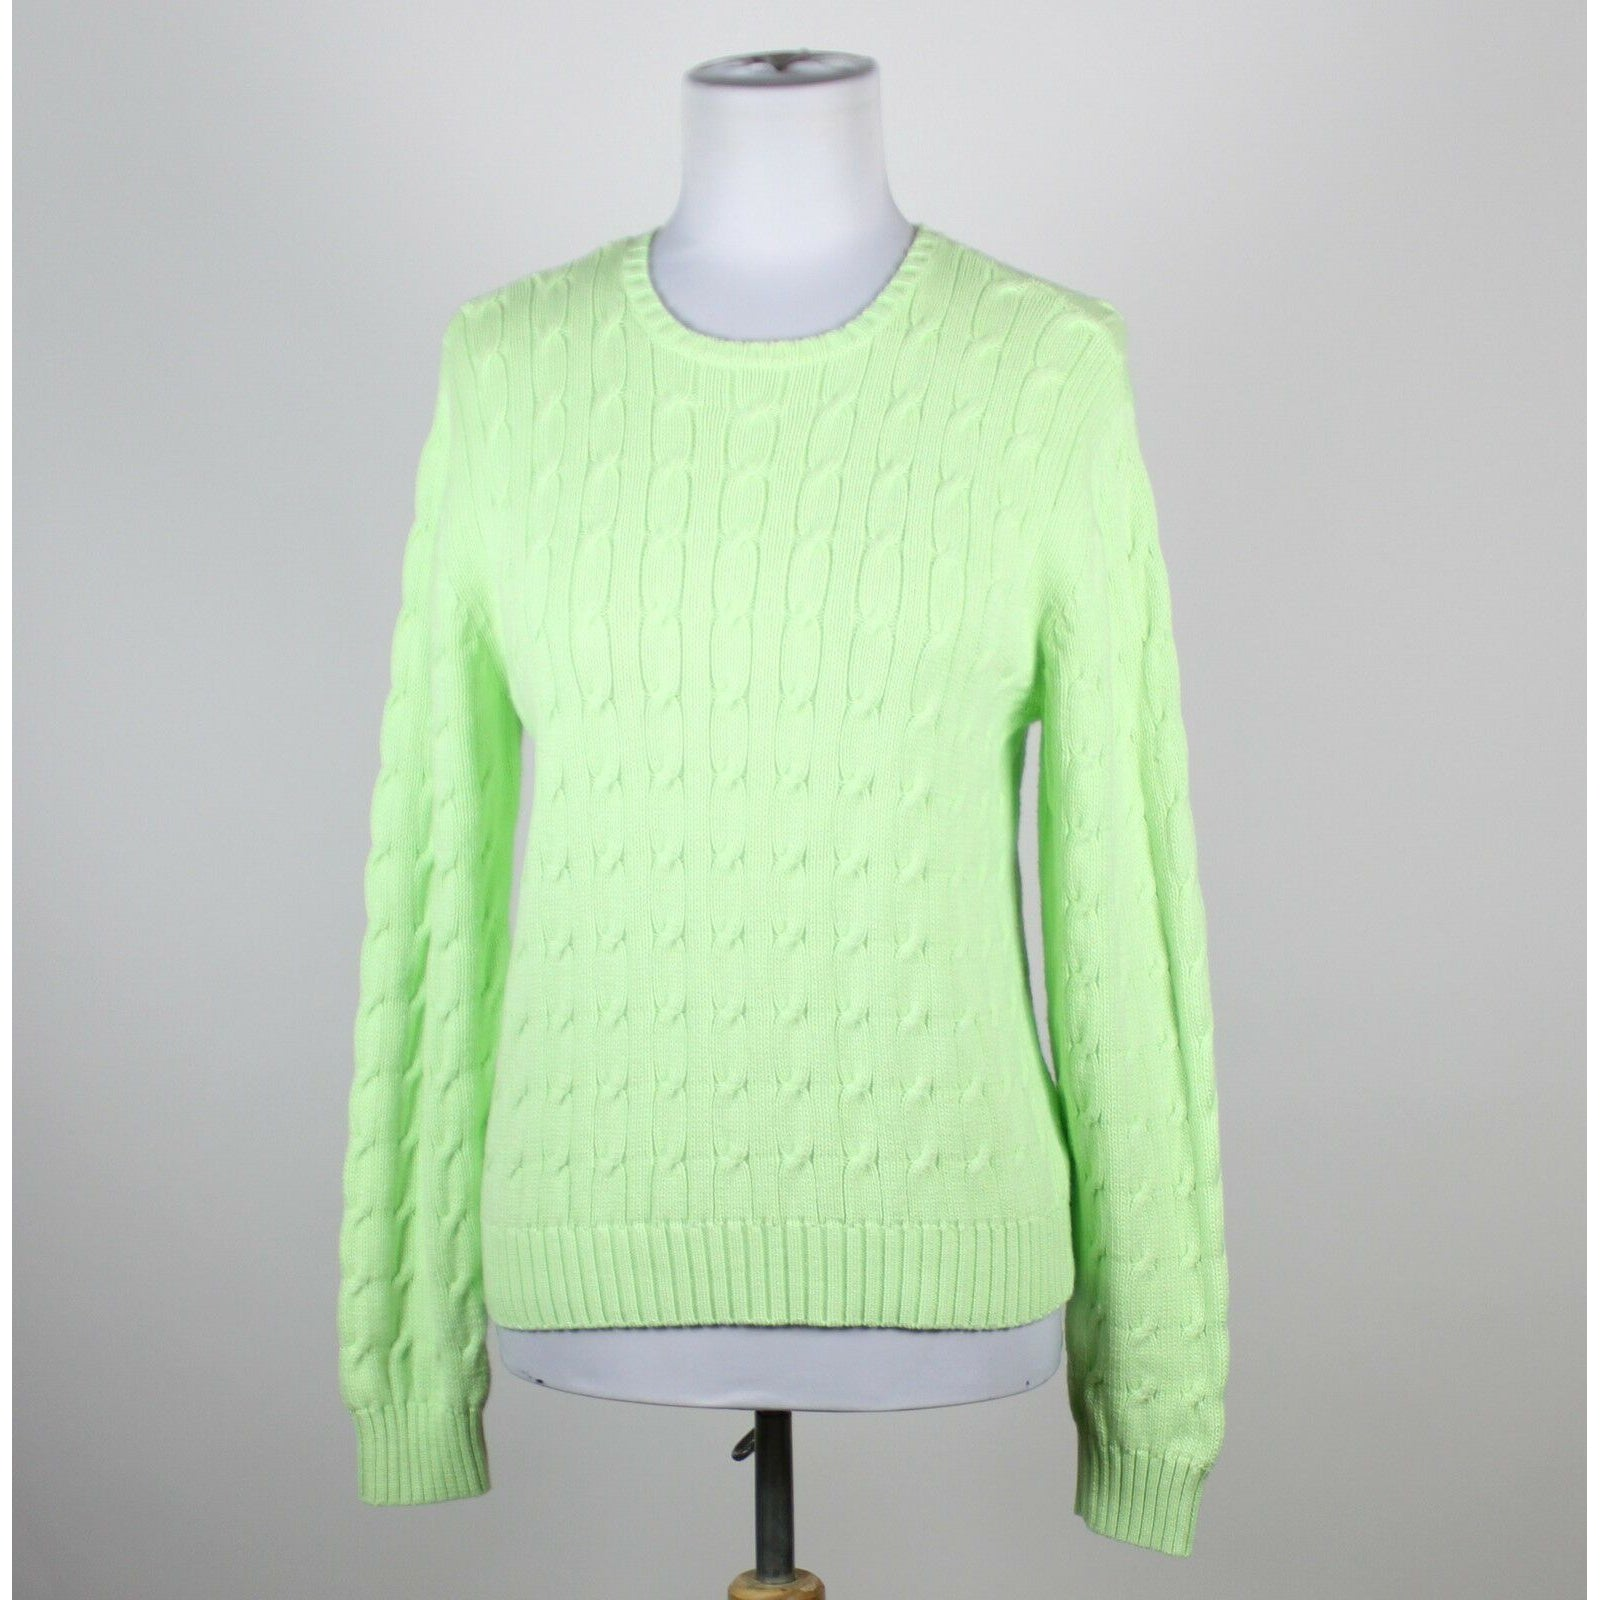 KAY LEIGH DESIGNS light green cotton long sleeve crewneck cable knit sweater S-Newish